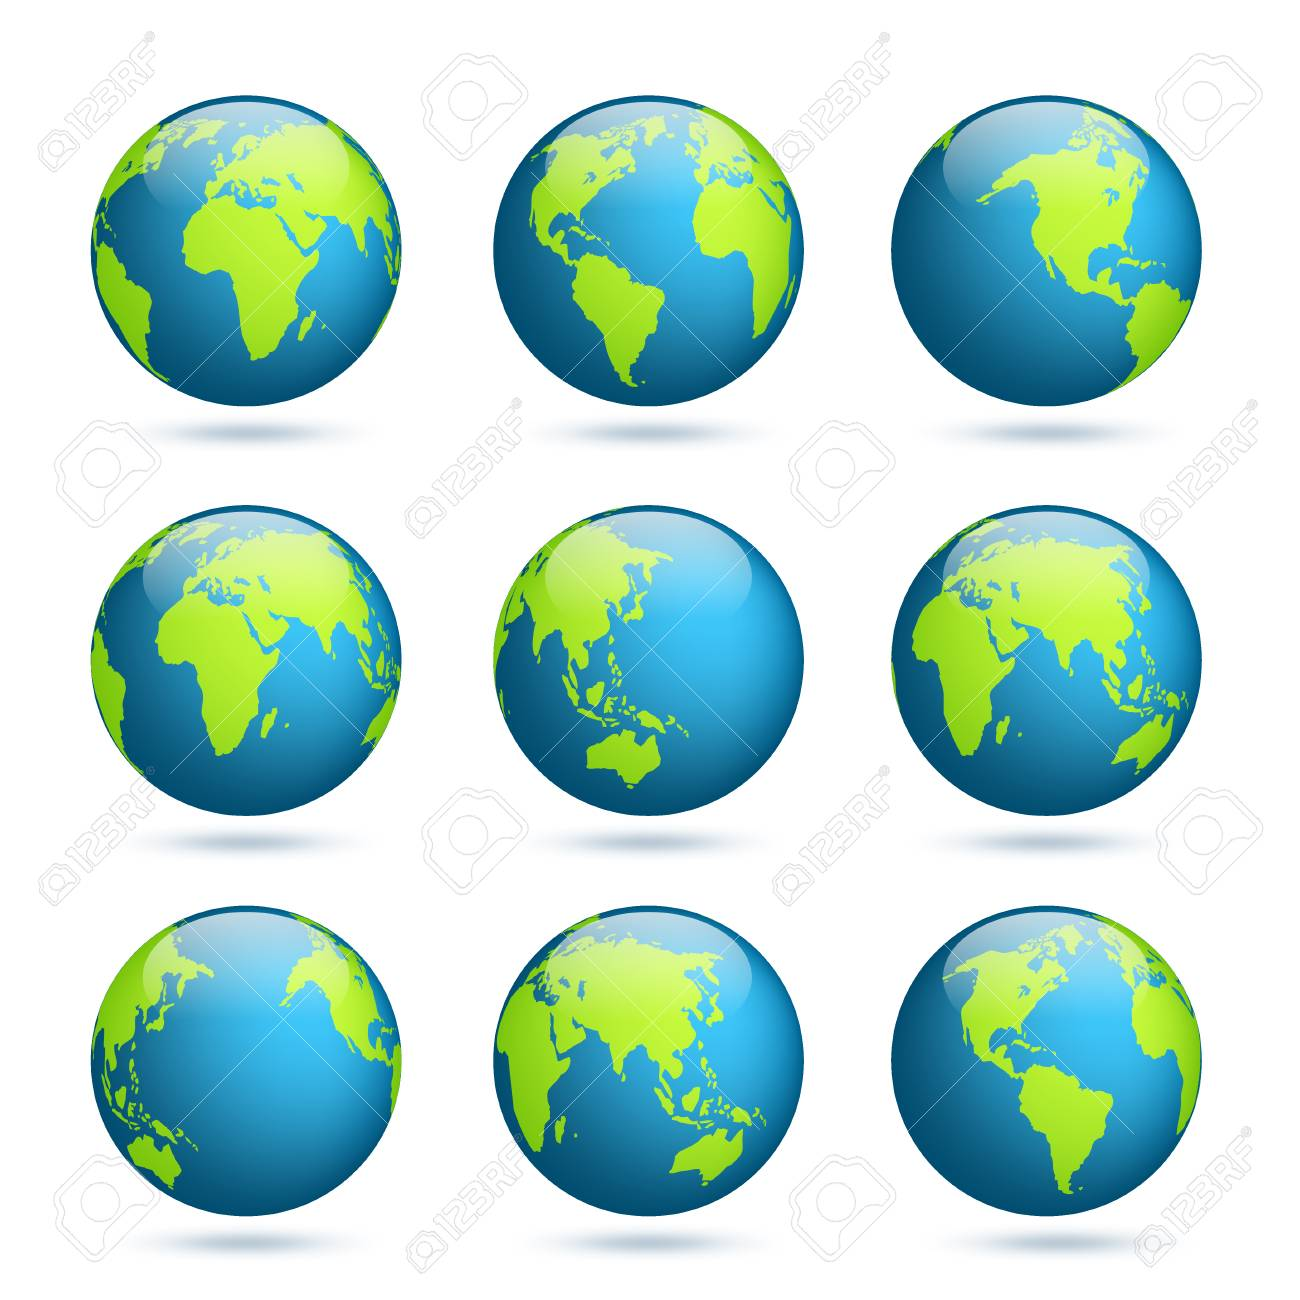 Earth Globe. World Map Set. Planet With Continents.Africa Asia ... on